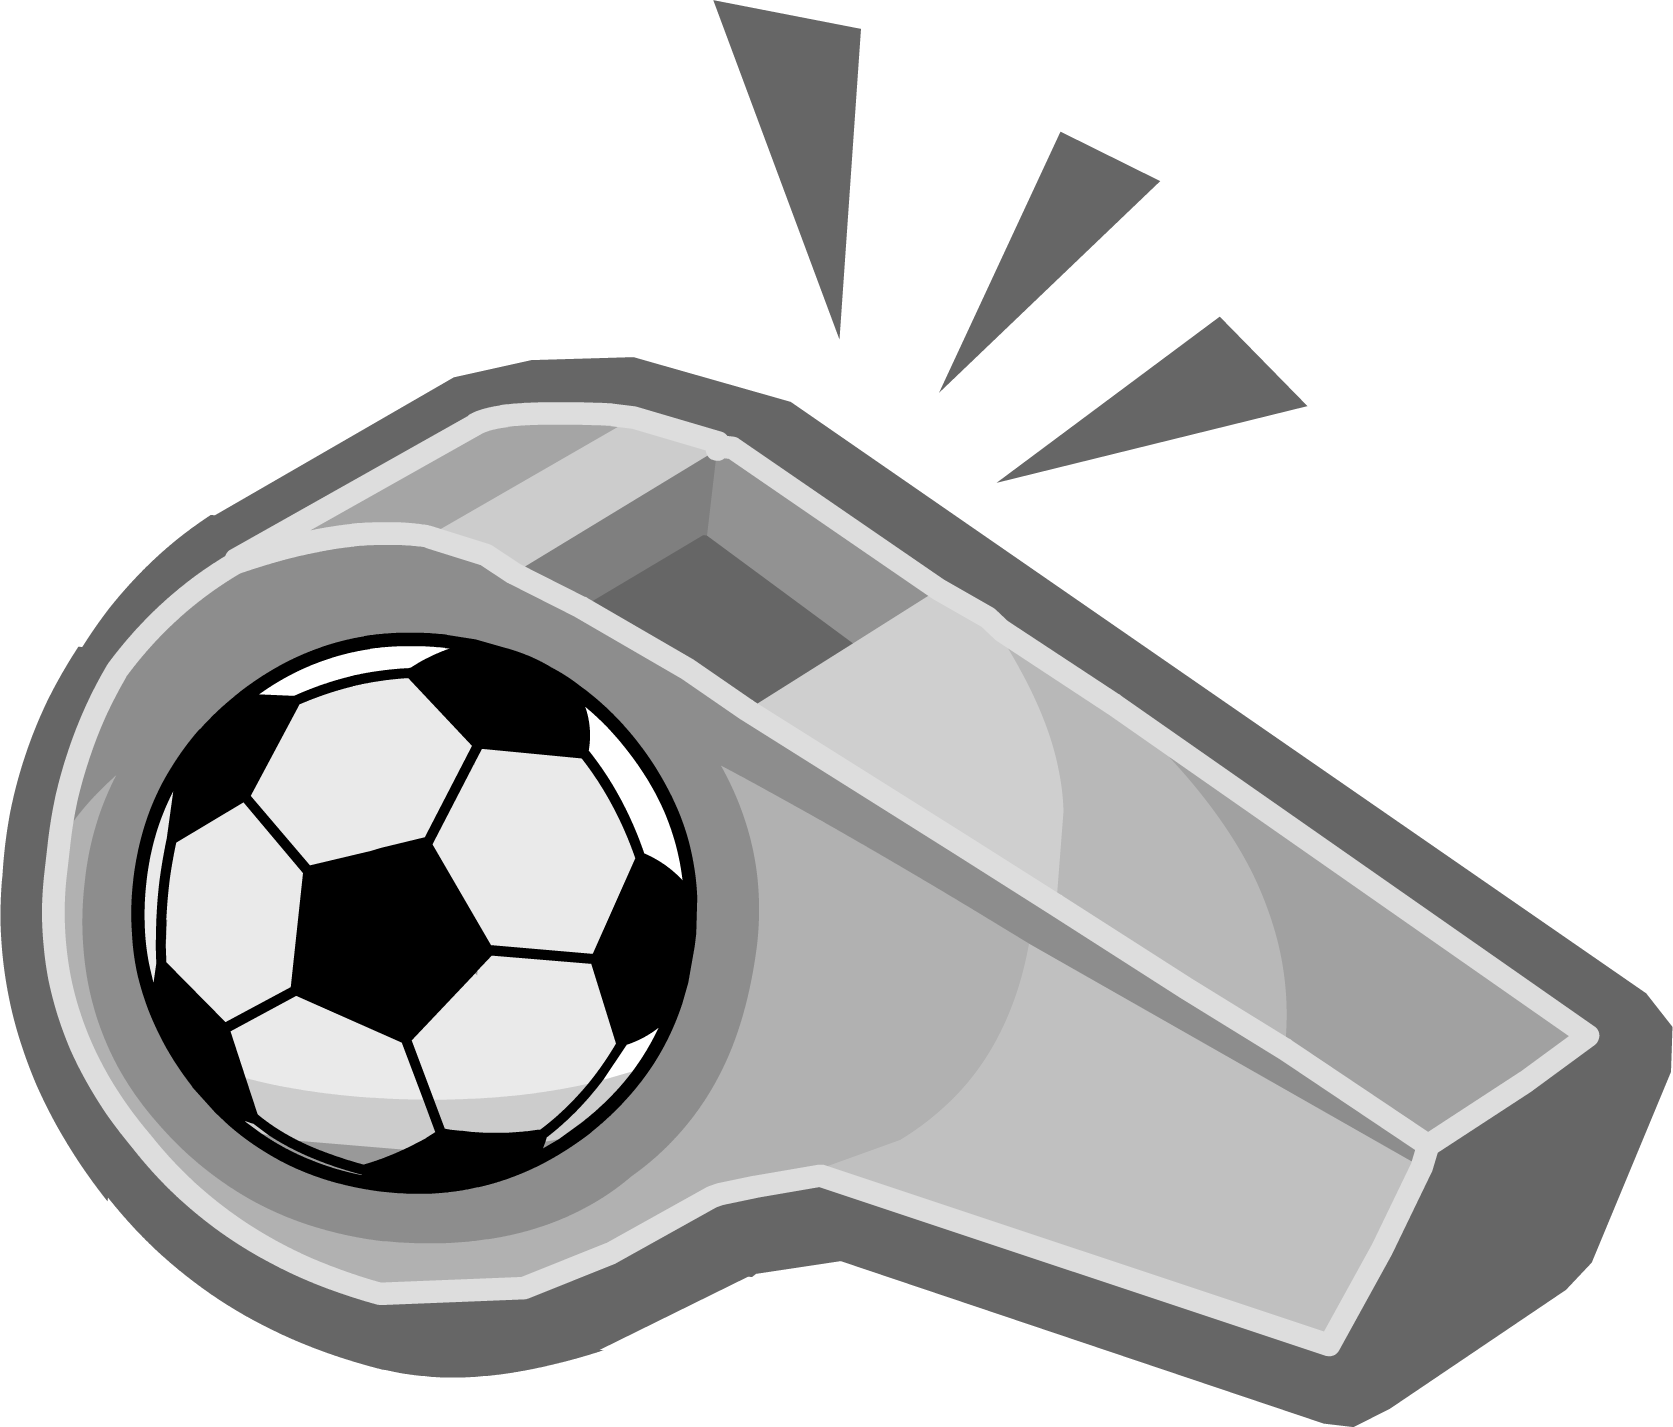 Whistle Png - Clipart Football Whistle Transparent Png (1673x1427), Png Download